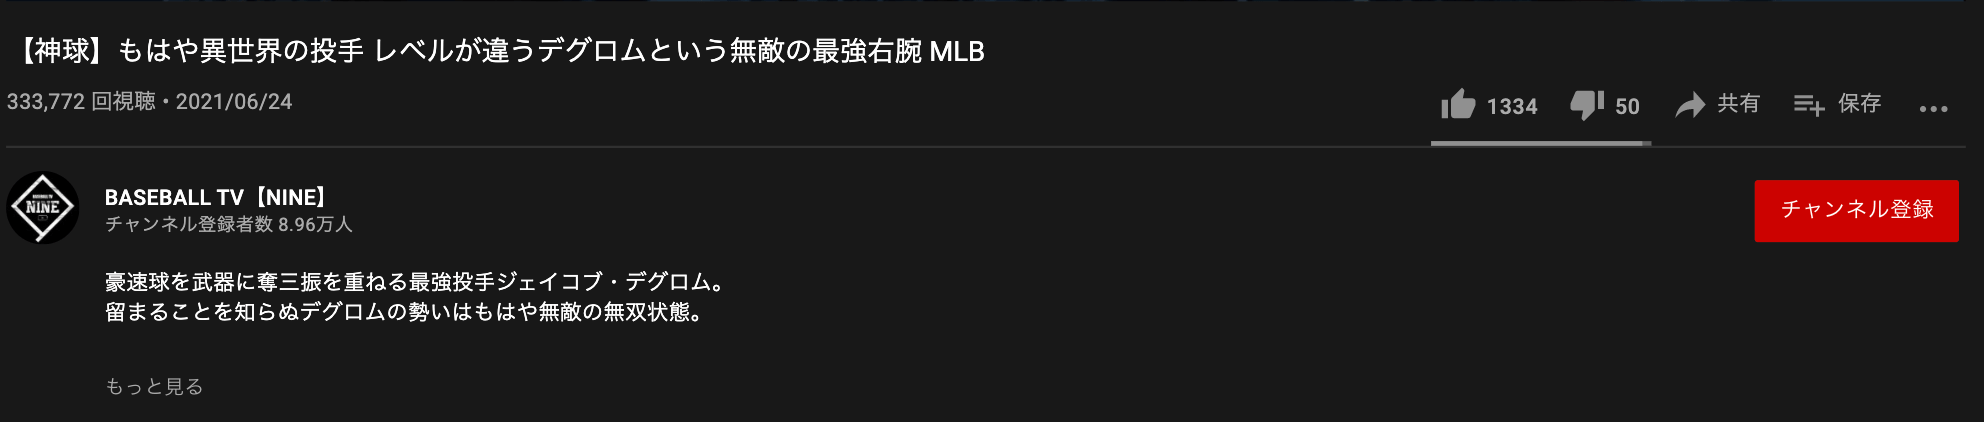 youtube-baseball player-content